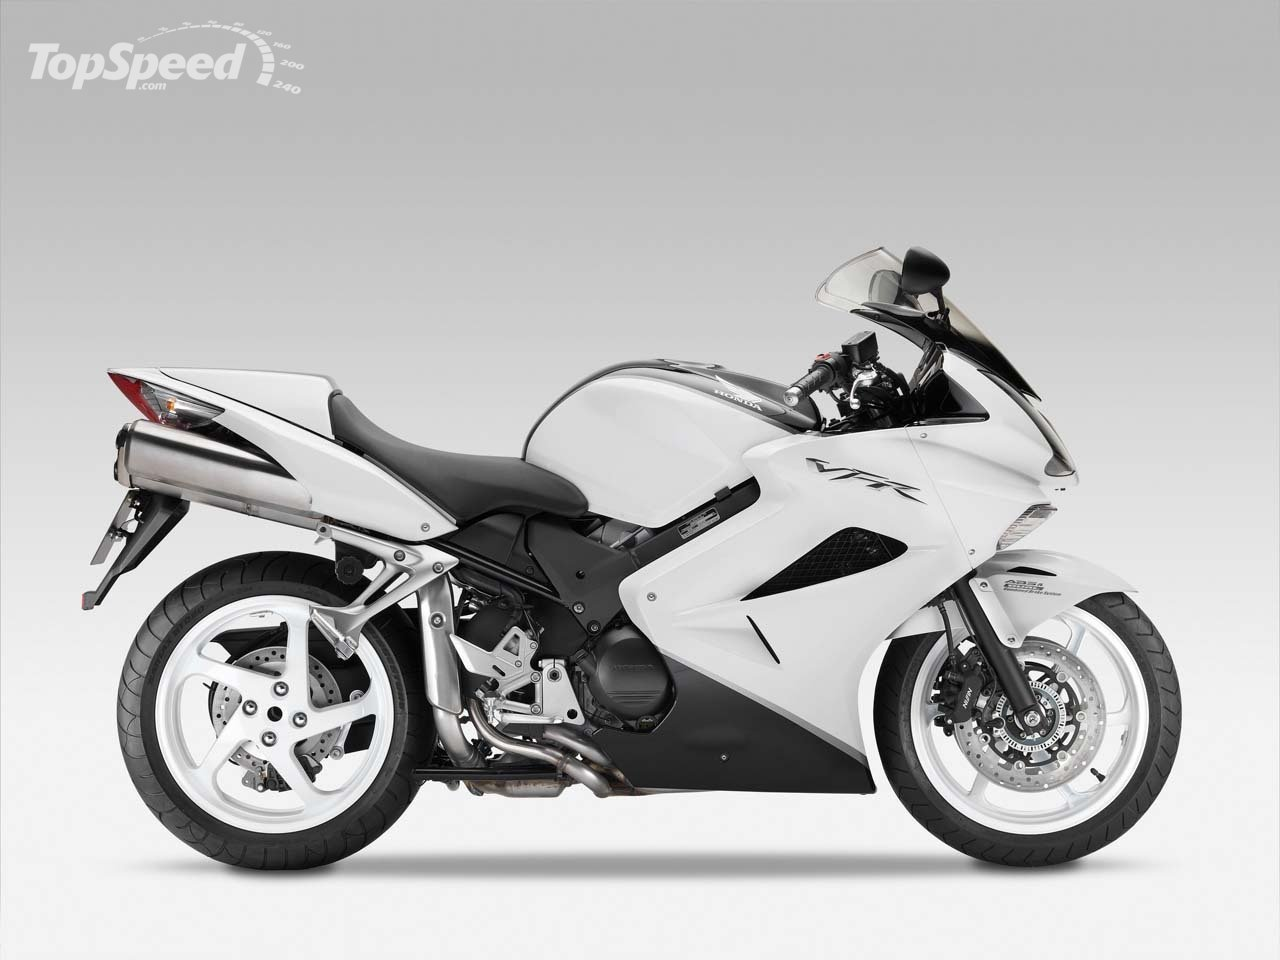 2009 Honda Interceptor ABS #5